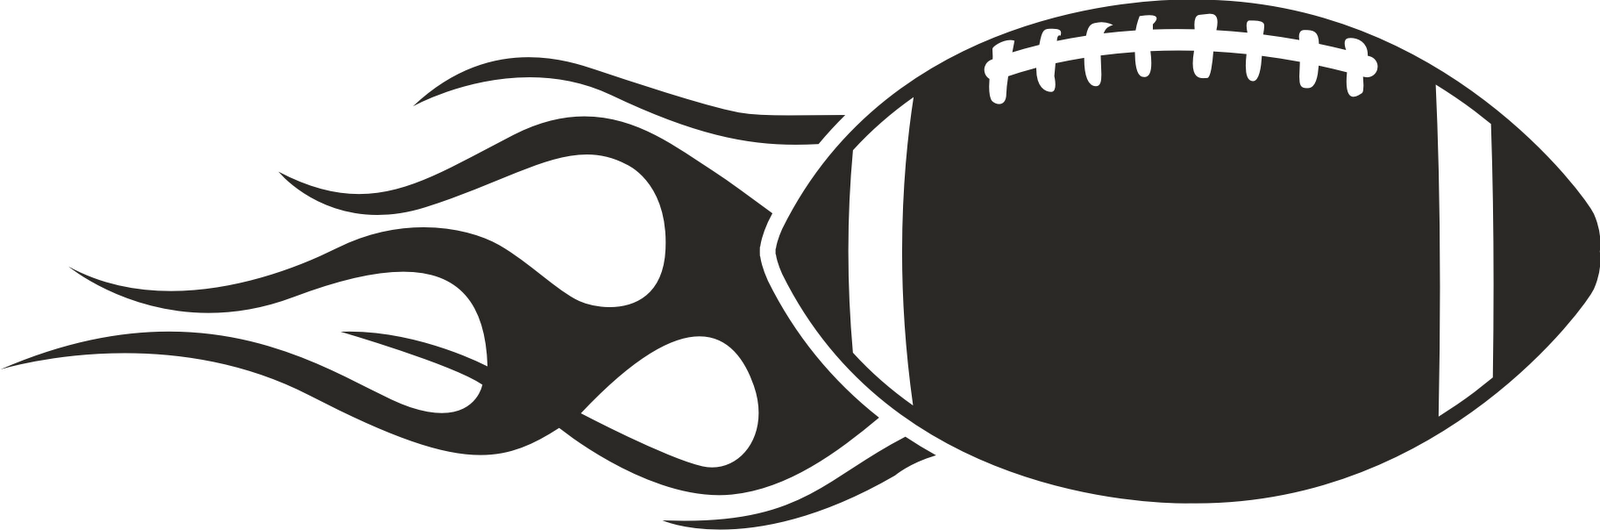 1600x530 Football Clip Art Free Printable Clipart Images 8